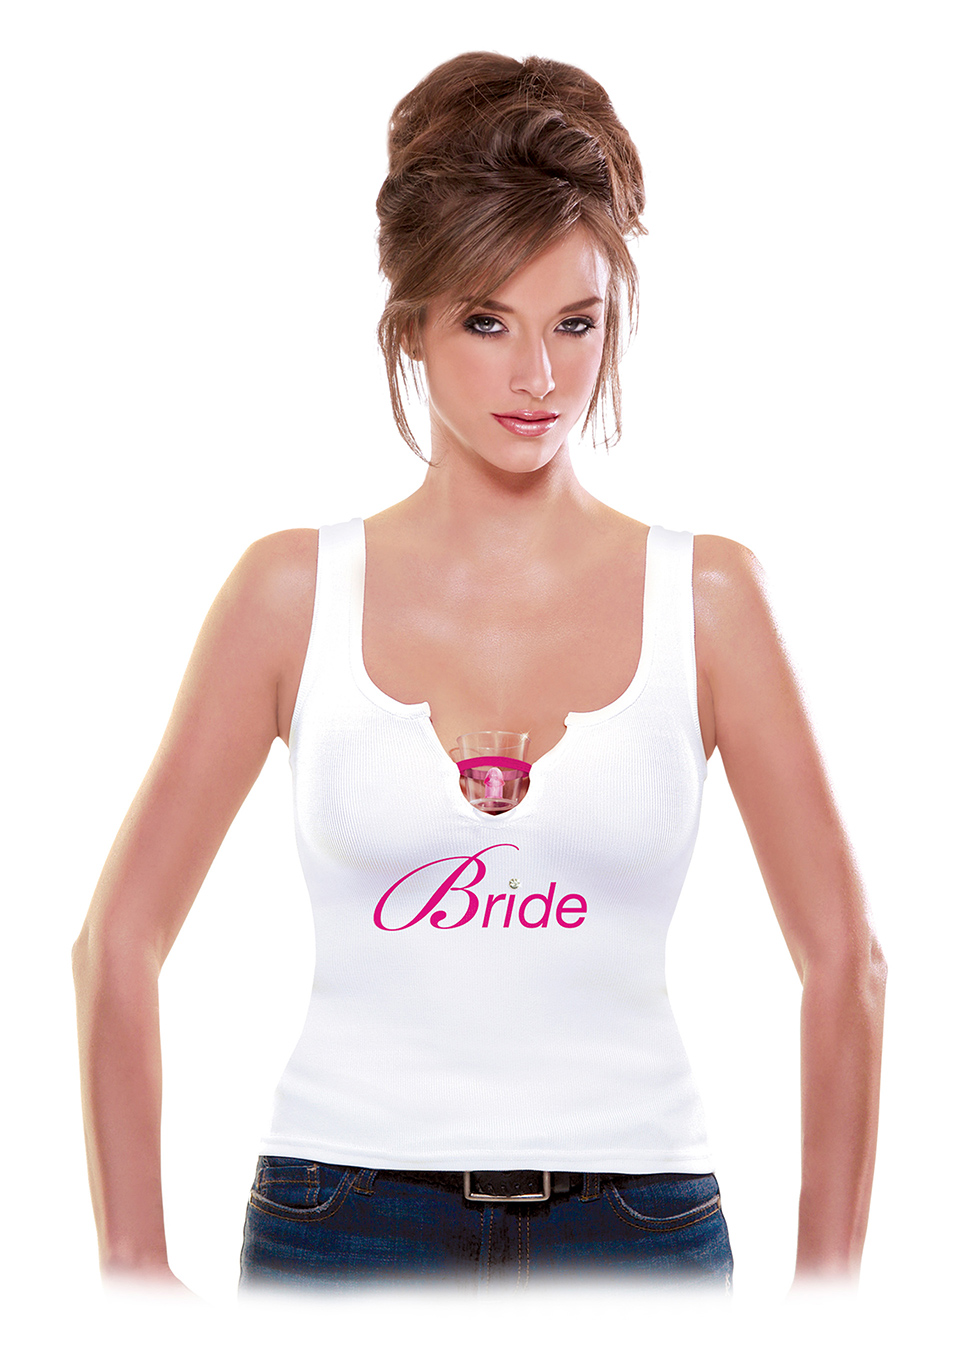 Bride Shot Glass Tank Top 2xl/3xl